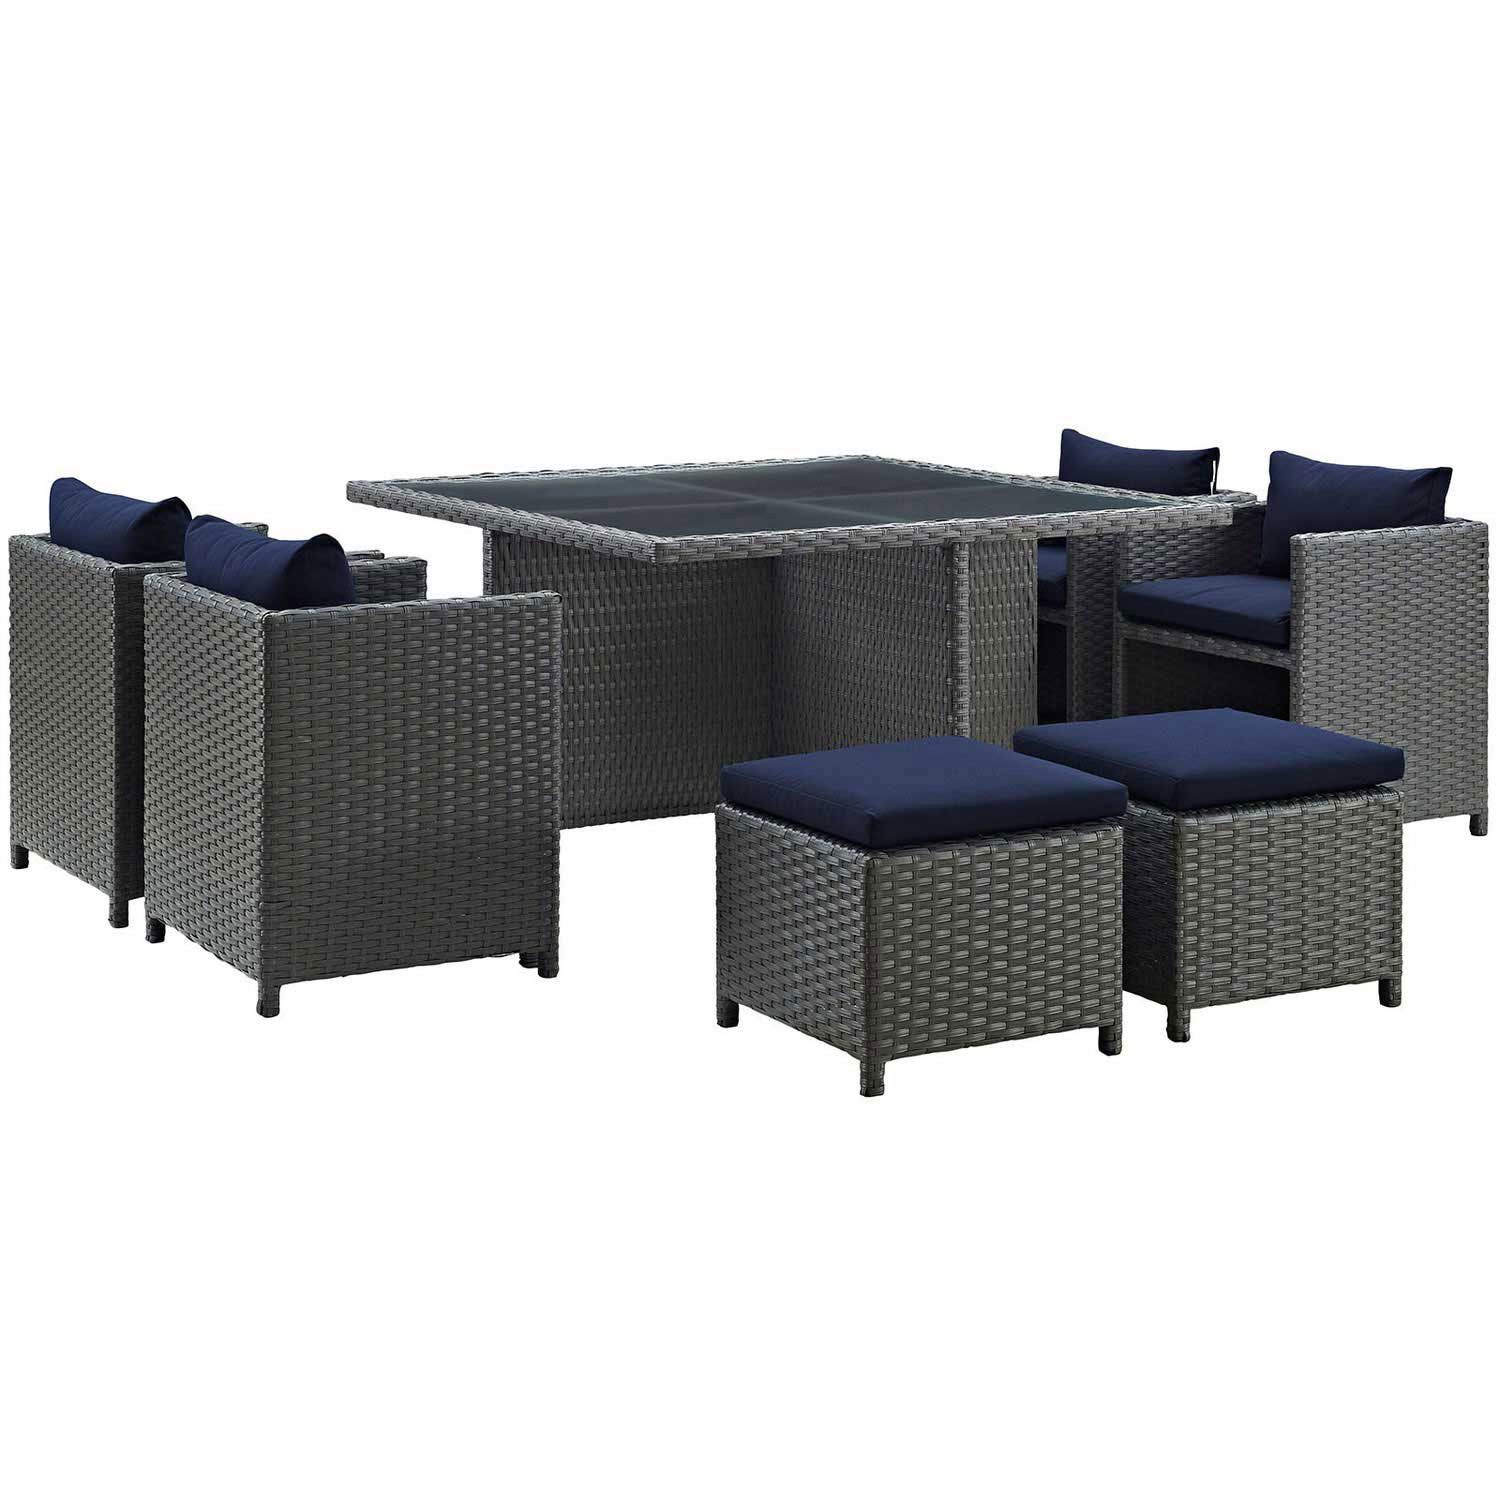 Modway Sojourn 9 Piece Outdoor Patio Glass Top Sunbrella Dining Set - Canvas Navy